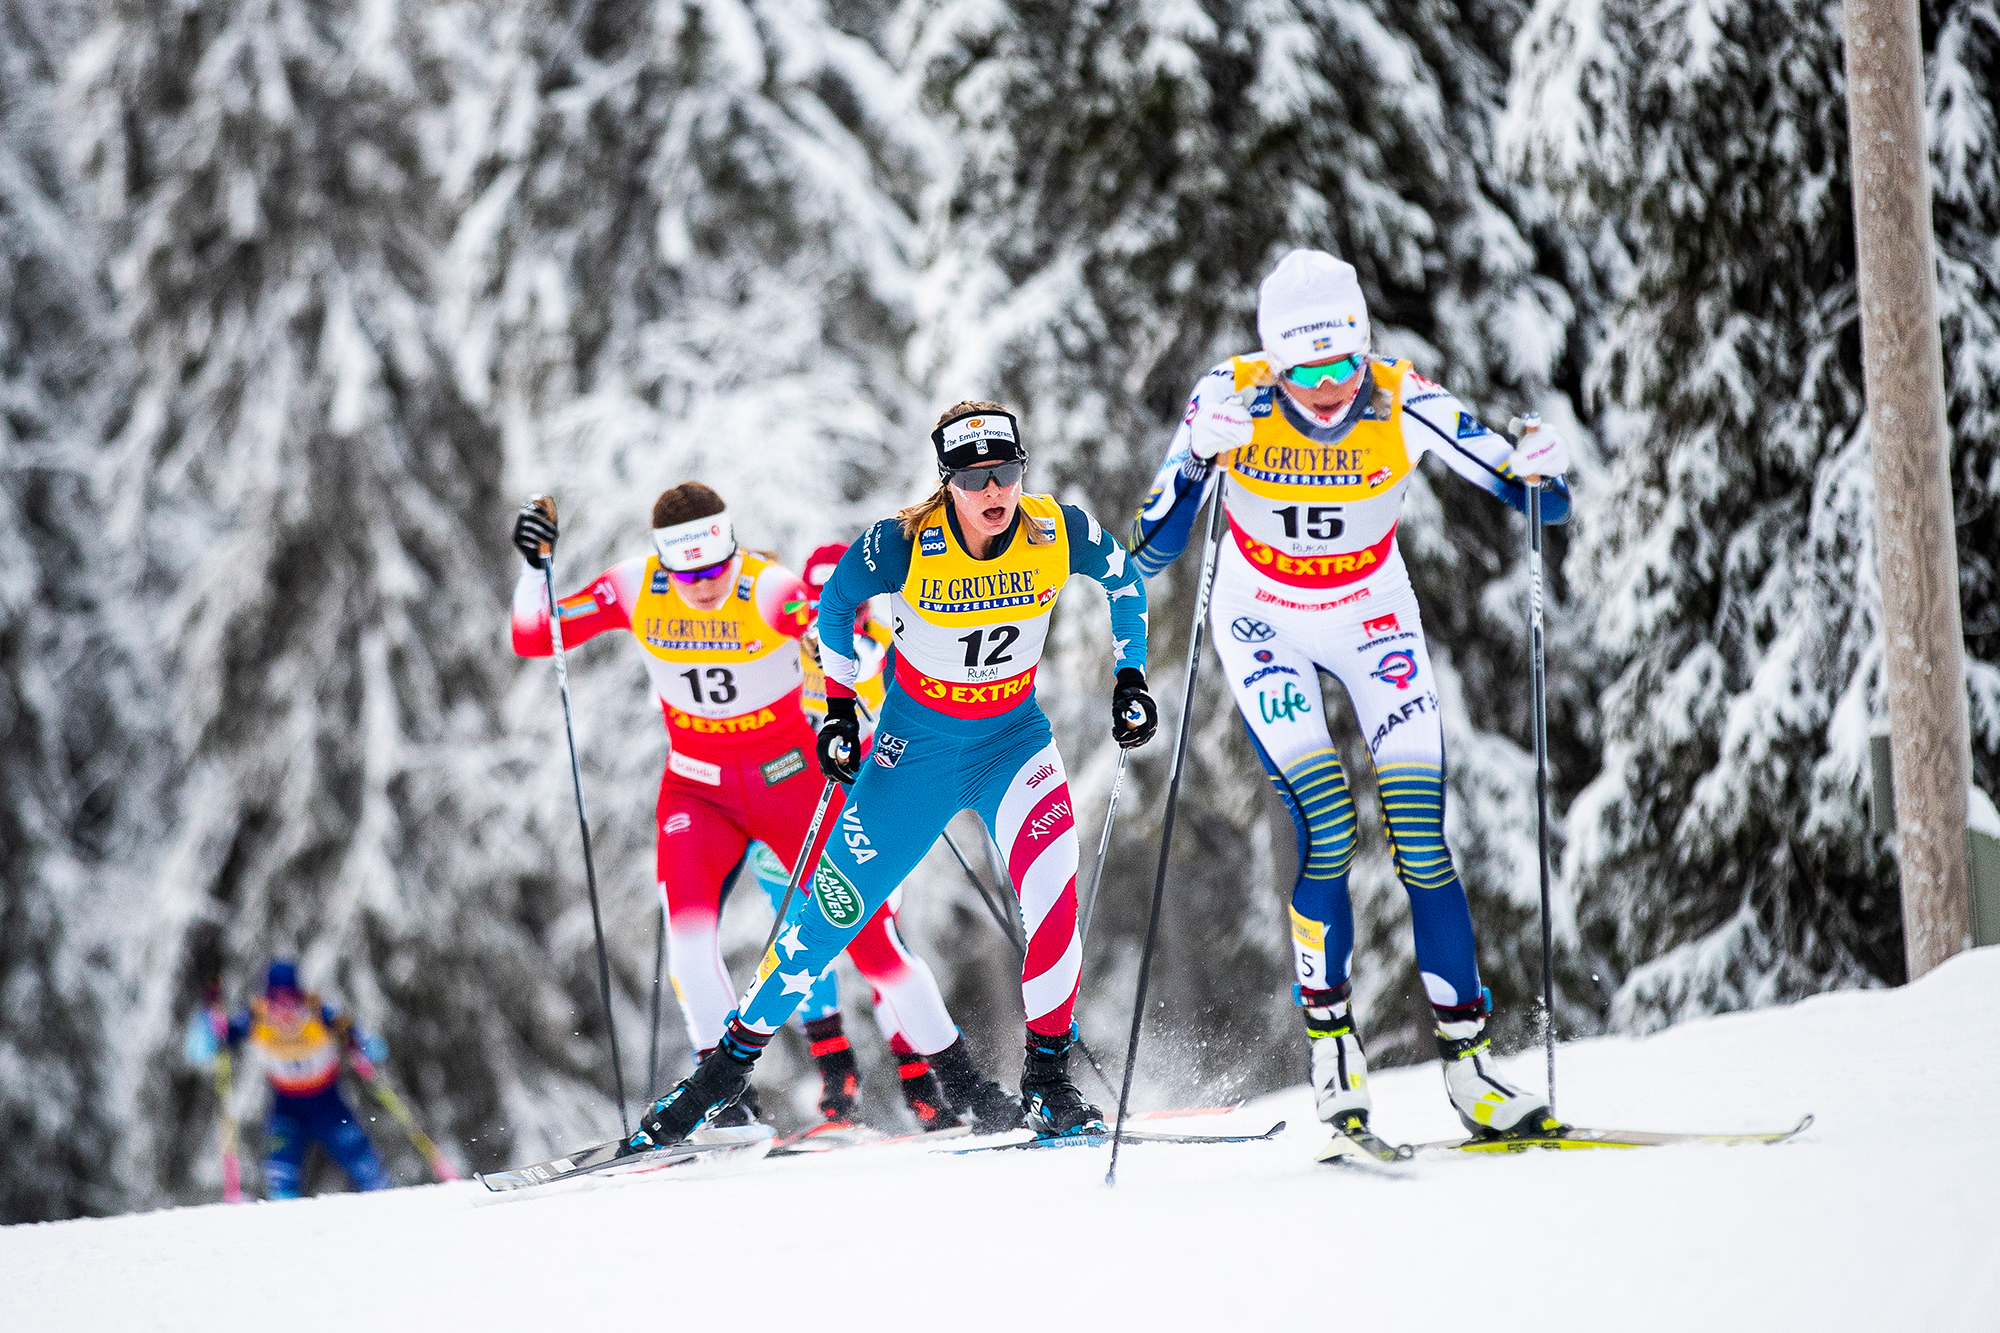 Cross Country International Continental Cup Criteria